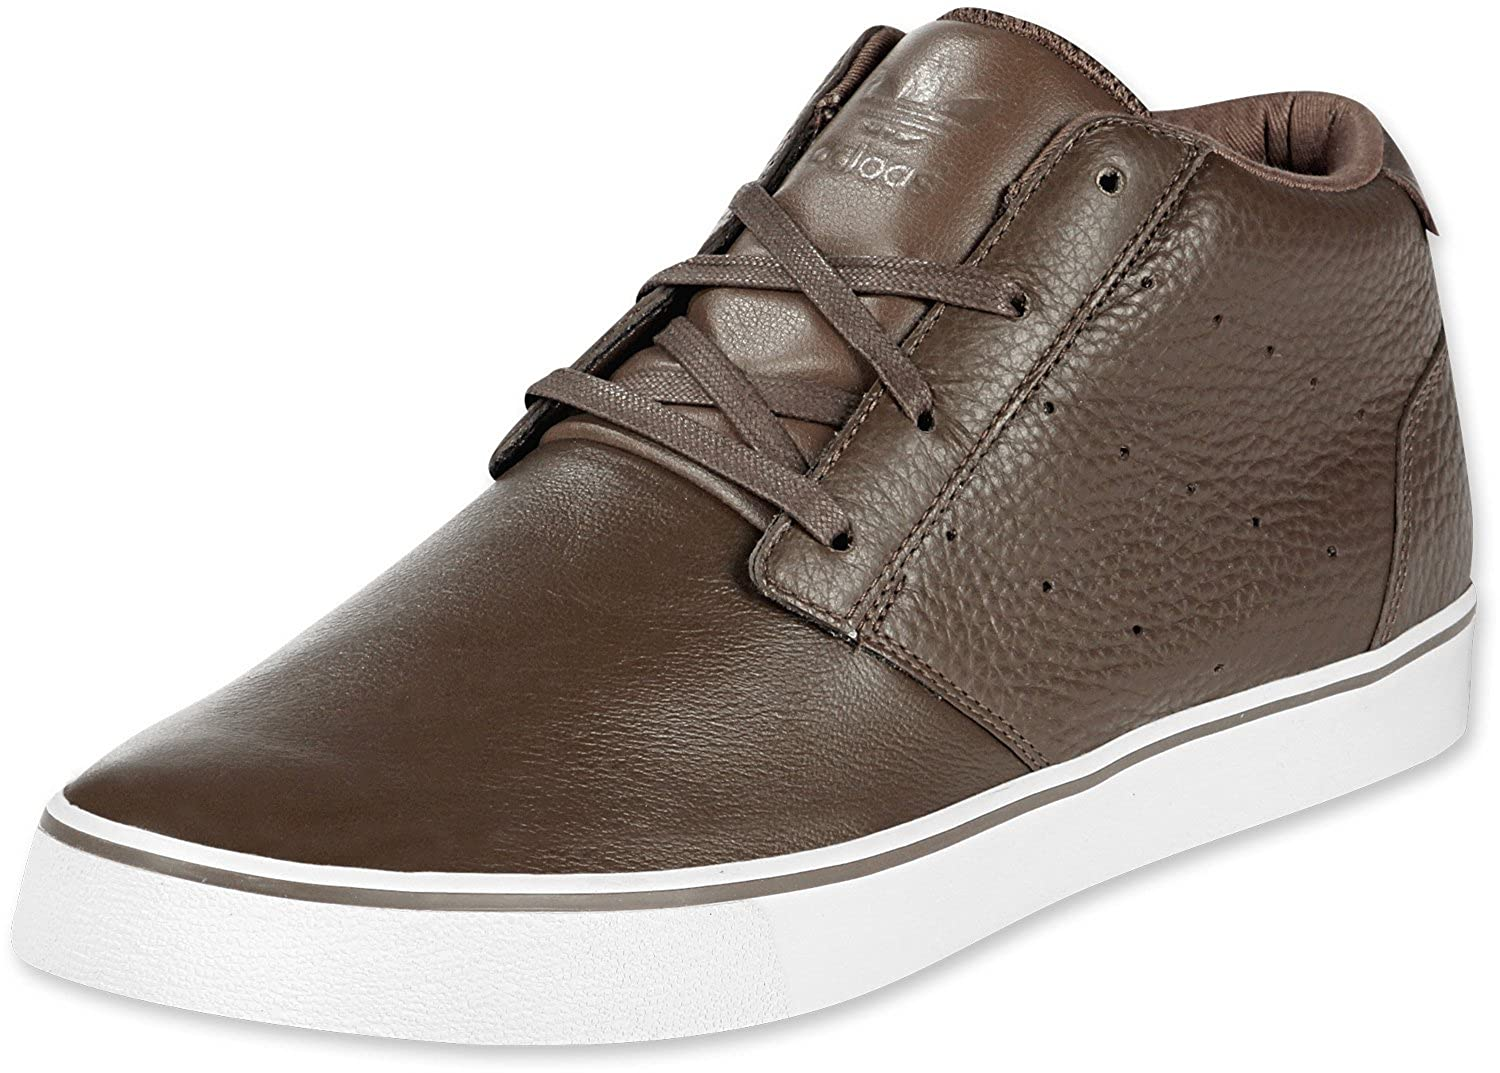 info for 13f05 fab43 Adidas Foray M Brown g50556, Hombre, Brown SpiceWhite, 46 Amazon.es  Deportes y aire libre